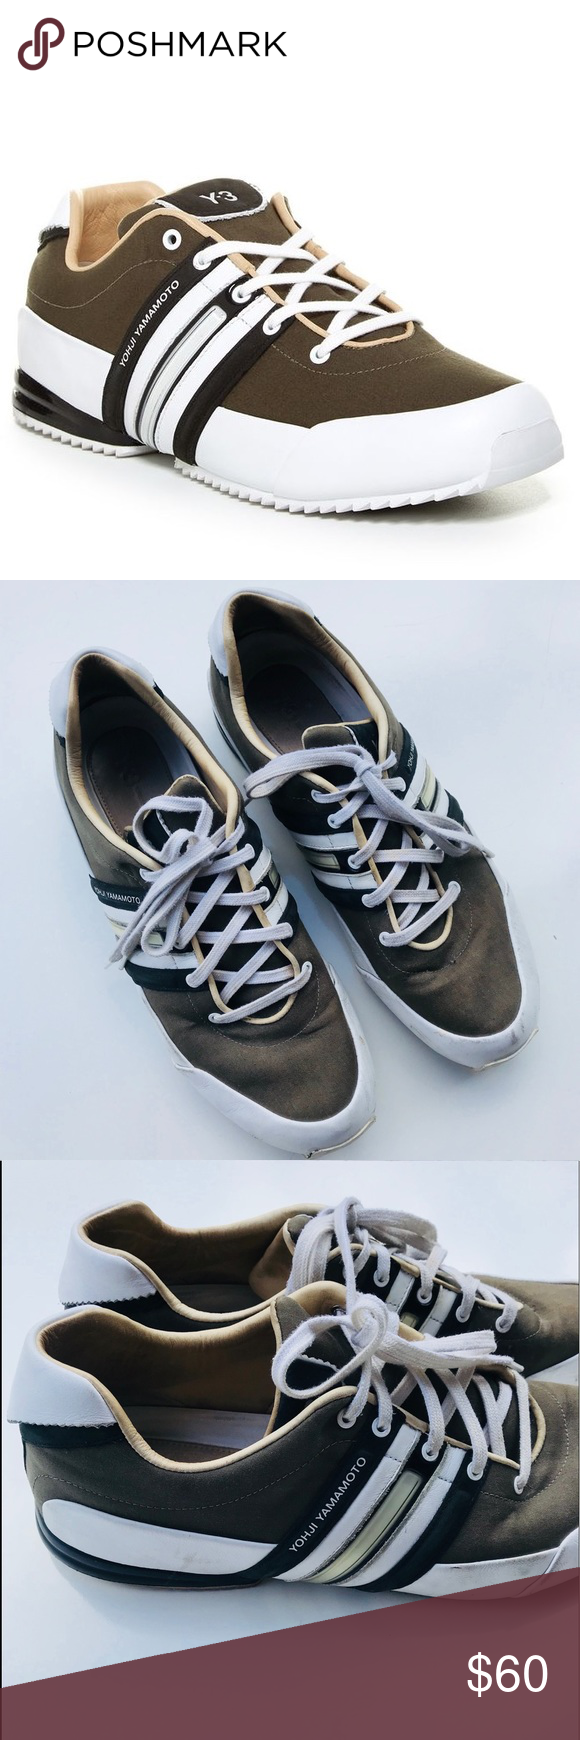 b53bd6f933193 Spotted while shopping on Poshmark  Y-3 Yohji Yamamoto Sprint Classic  Sneakers!  poshmark  fashion  shopping  style  Y-3  Other